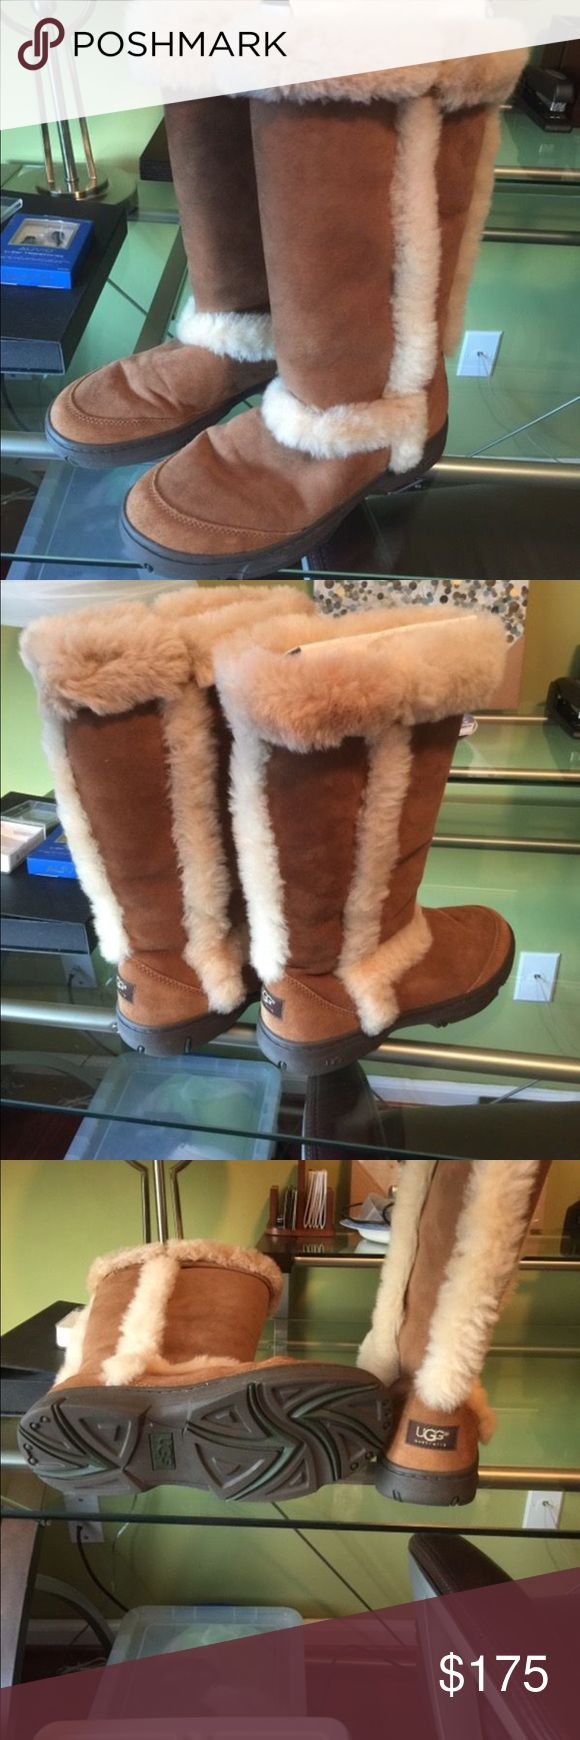 Sunburst Tall UGG Boots Sunburst Tall UGG Boots size 10. Fits like a 10.5. Practically new, I might have worn them once. I do not have the box anymore as I bought them in vacation a few years ago and didn't want to fly home with it. Paid $270 new, asking $175 obo! UGG Shoes Winter & Rain Boots